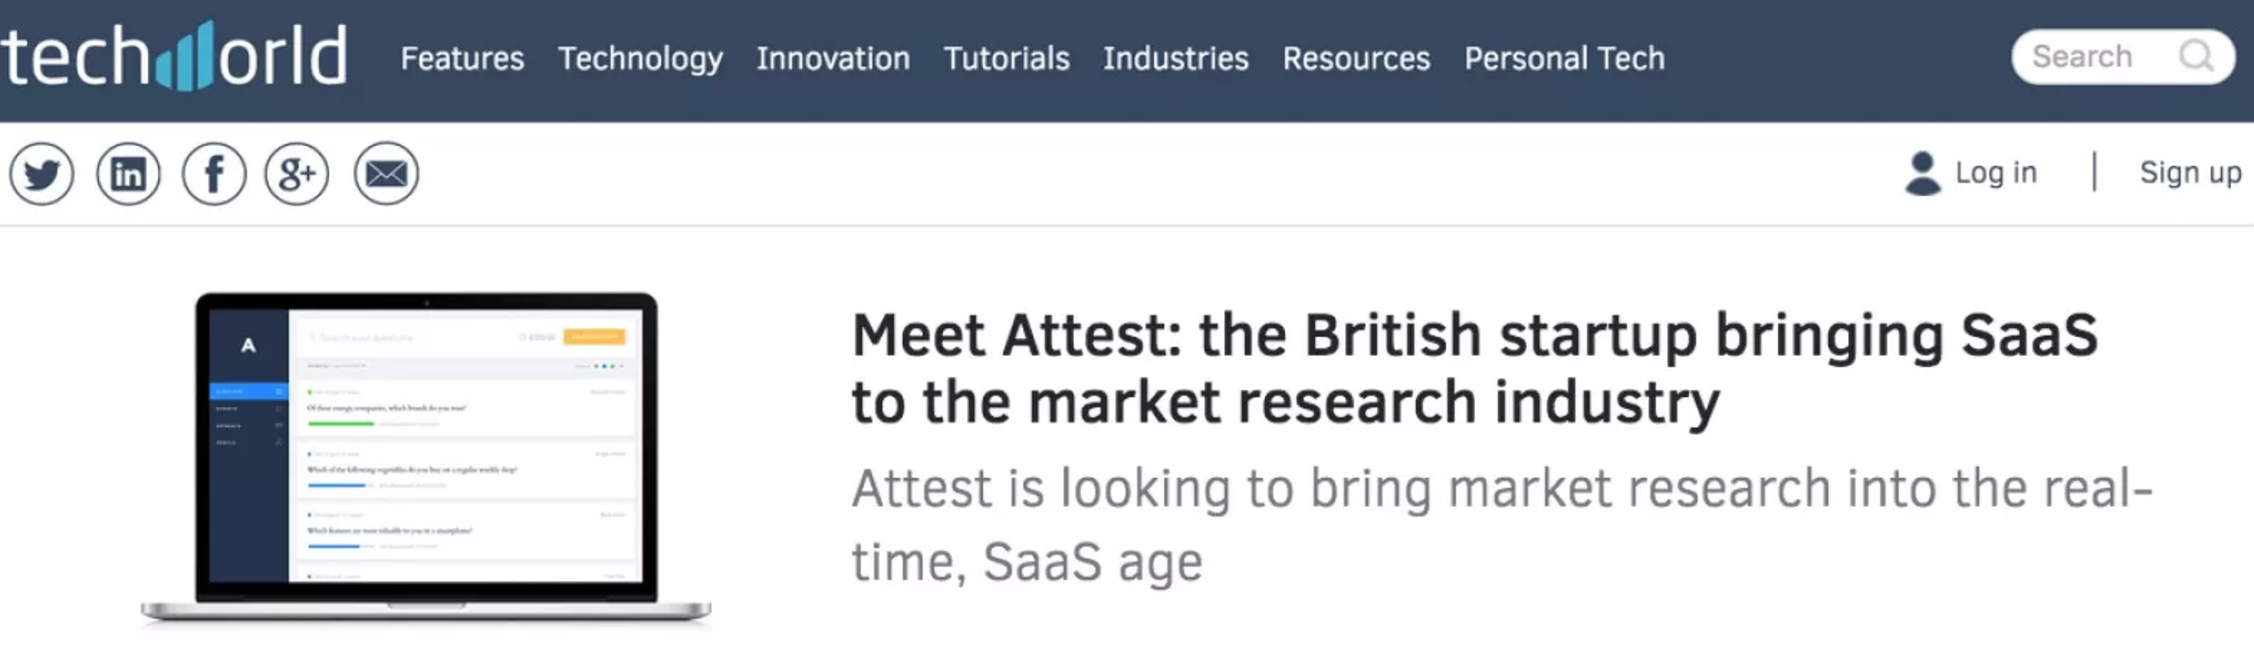 TechWorld features Attest as one of the top MarTech startups in the UK.